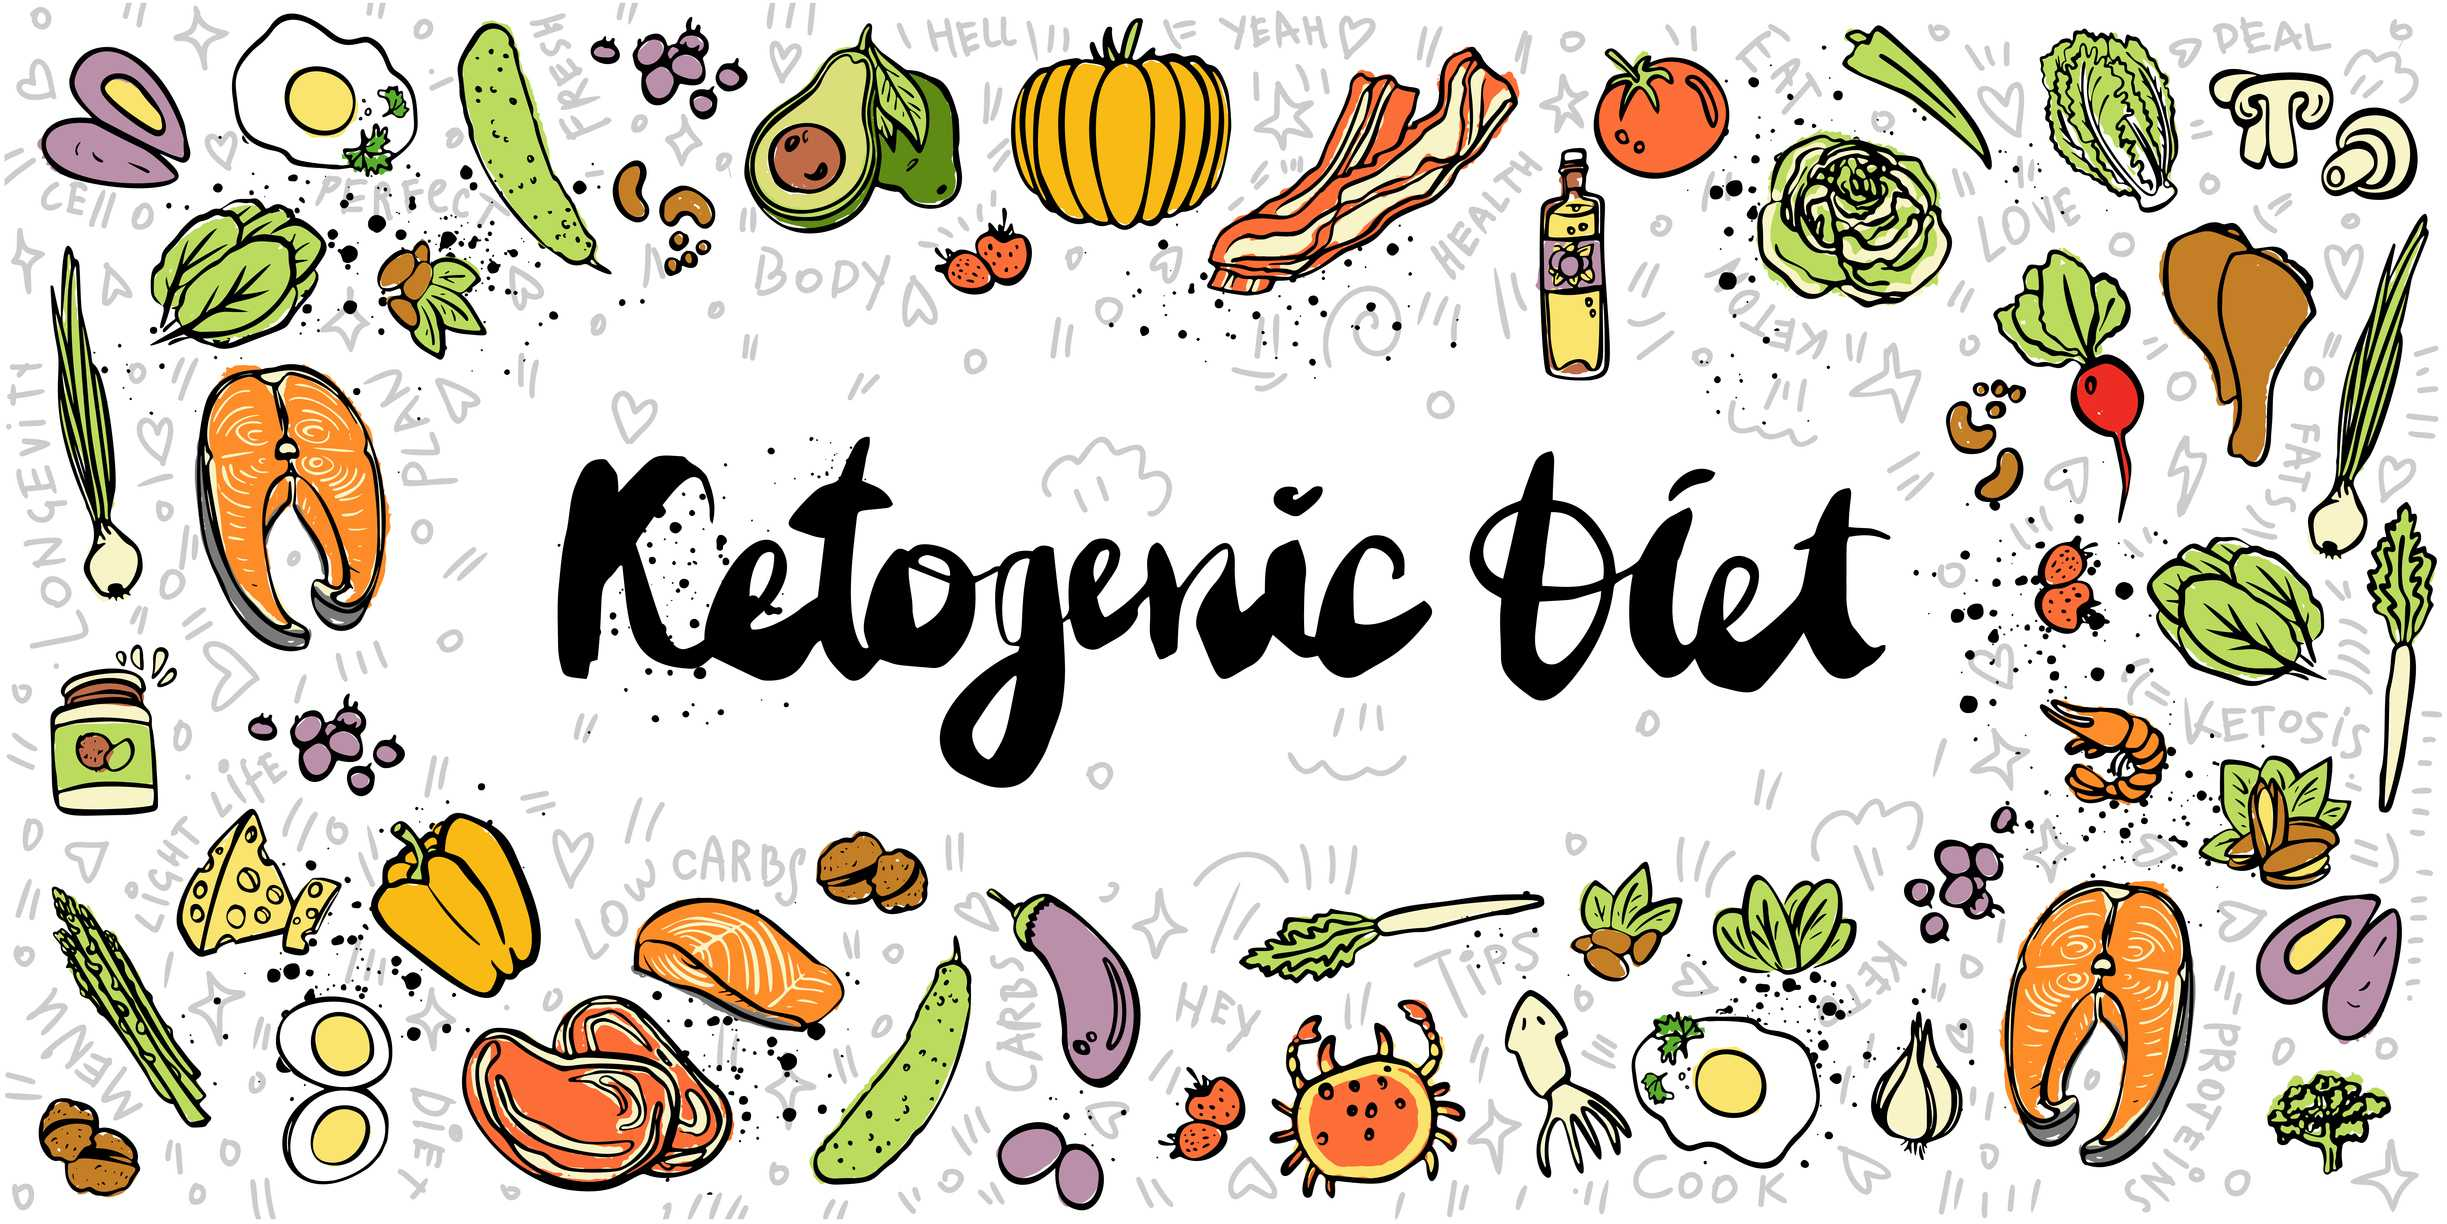 Ketogenic diet and polycystic kidney disease